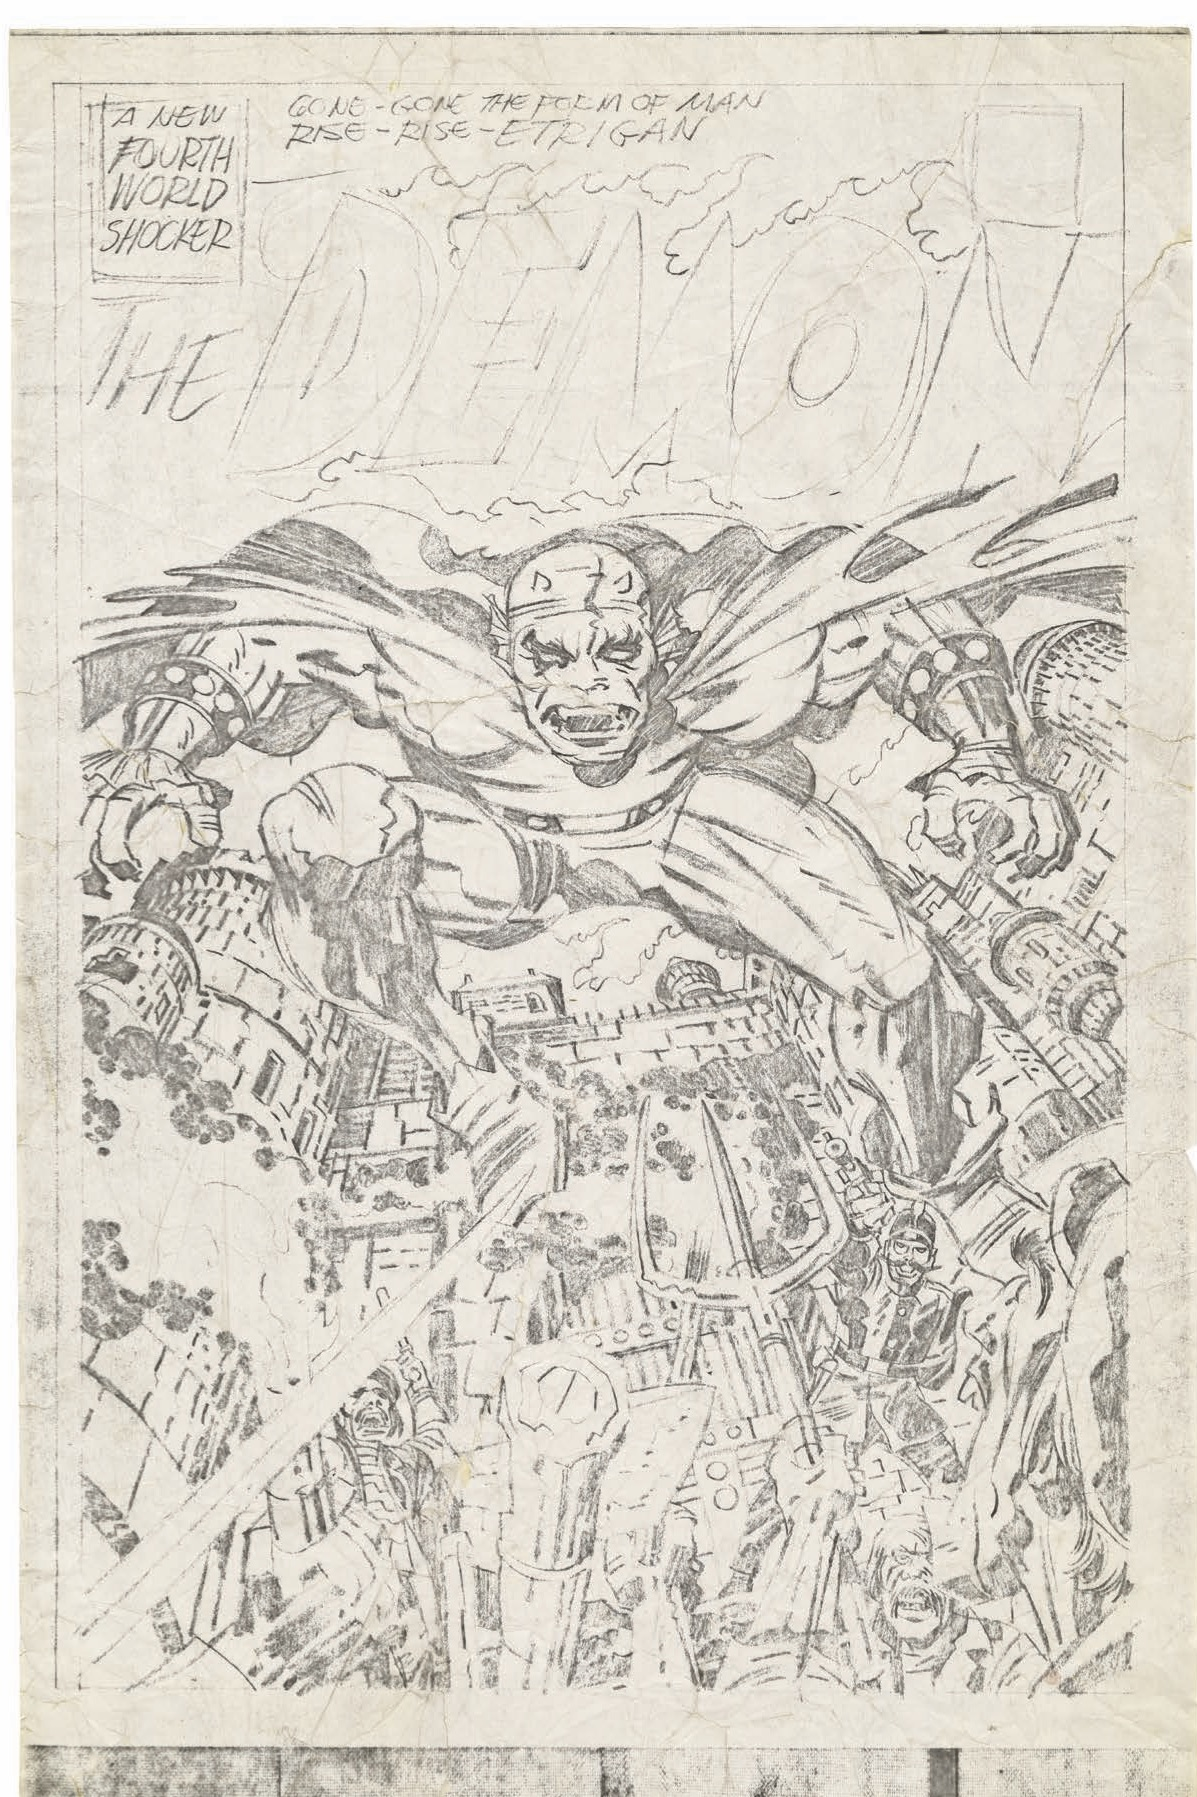 jackkirby_pencils_inks-lodemon1